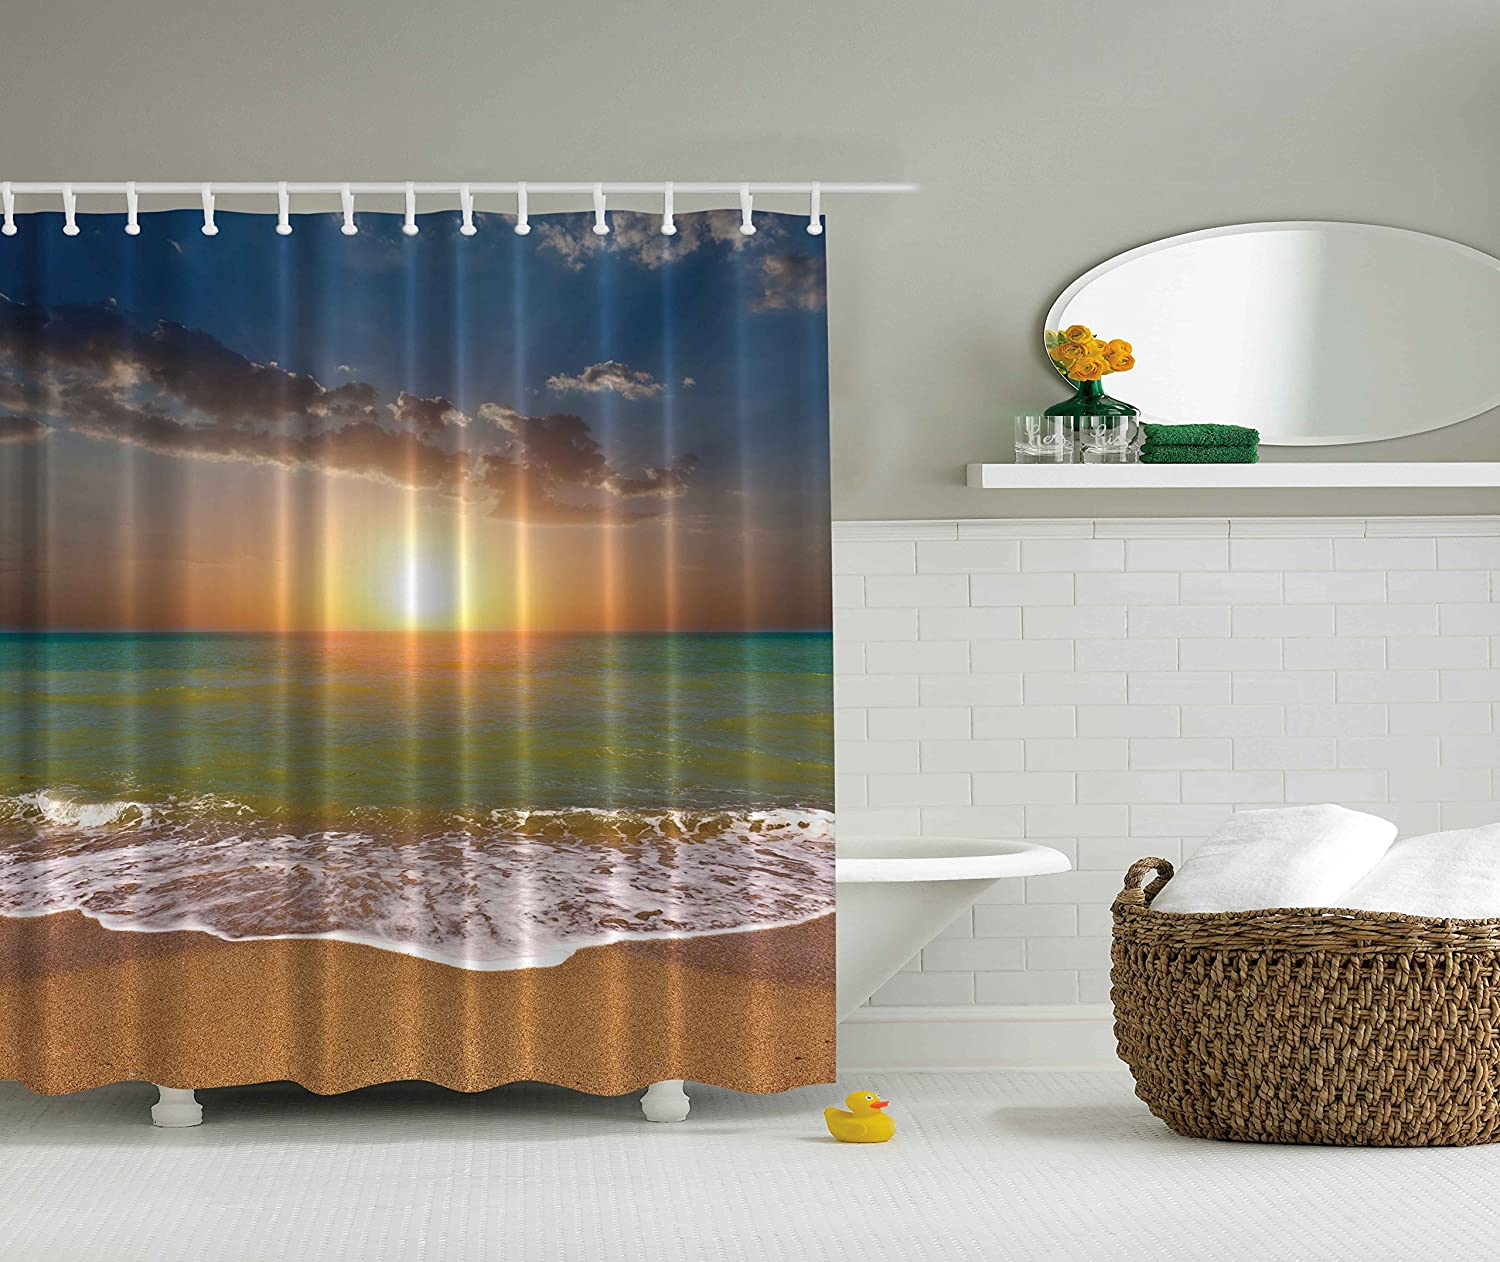 Ocean Themed Kitchen Decor Beach Themed Bathroom Accessories Beach Themed Bathroom With